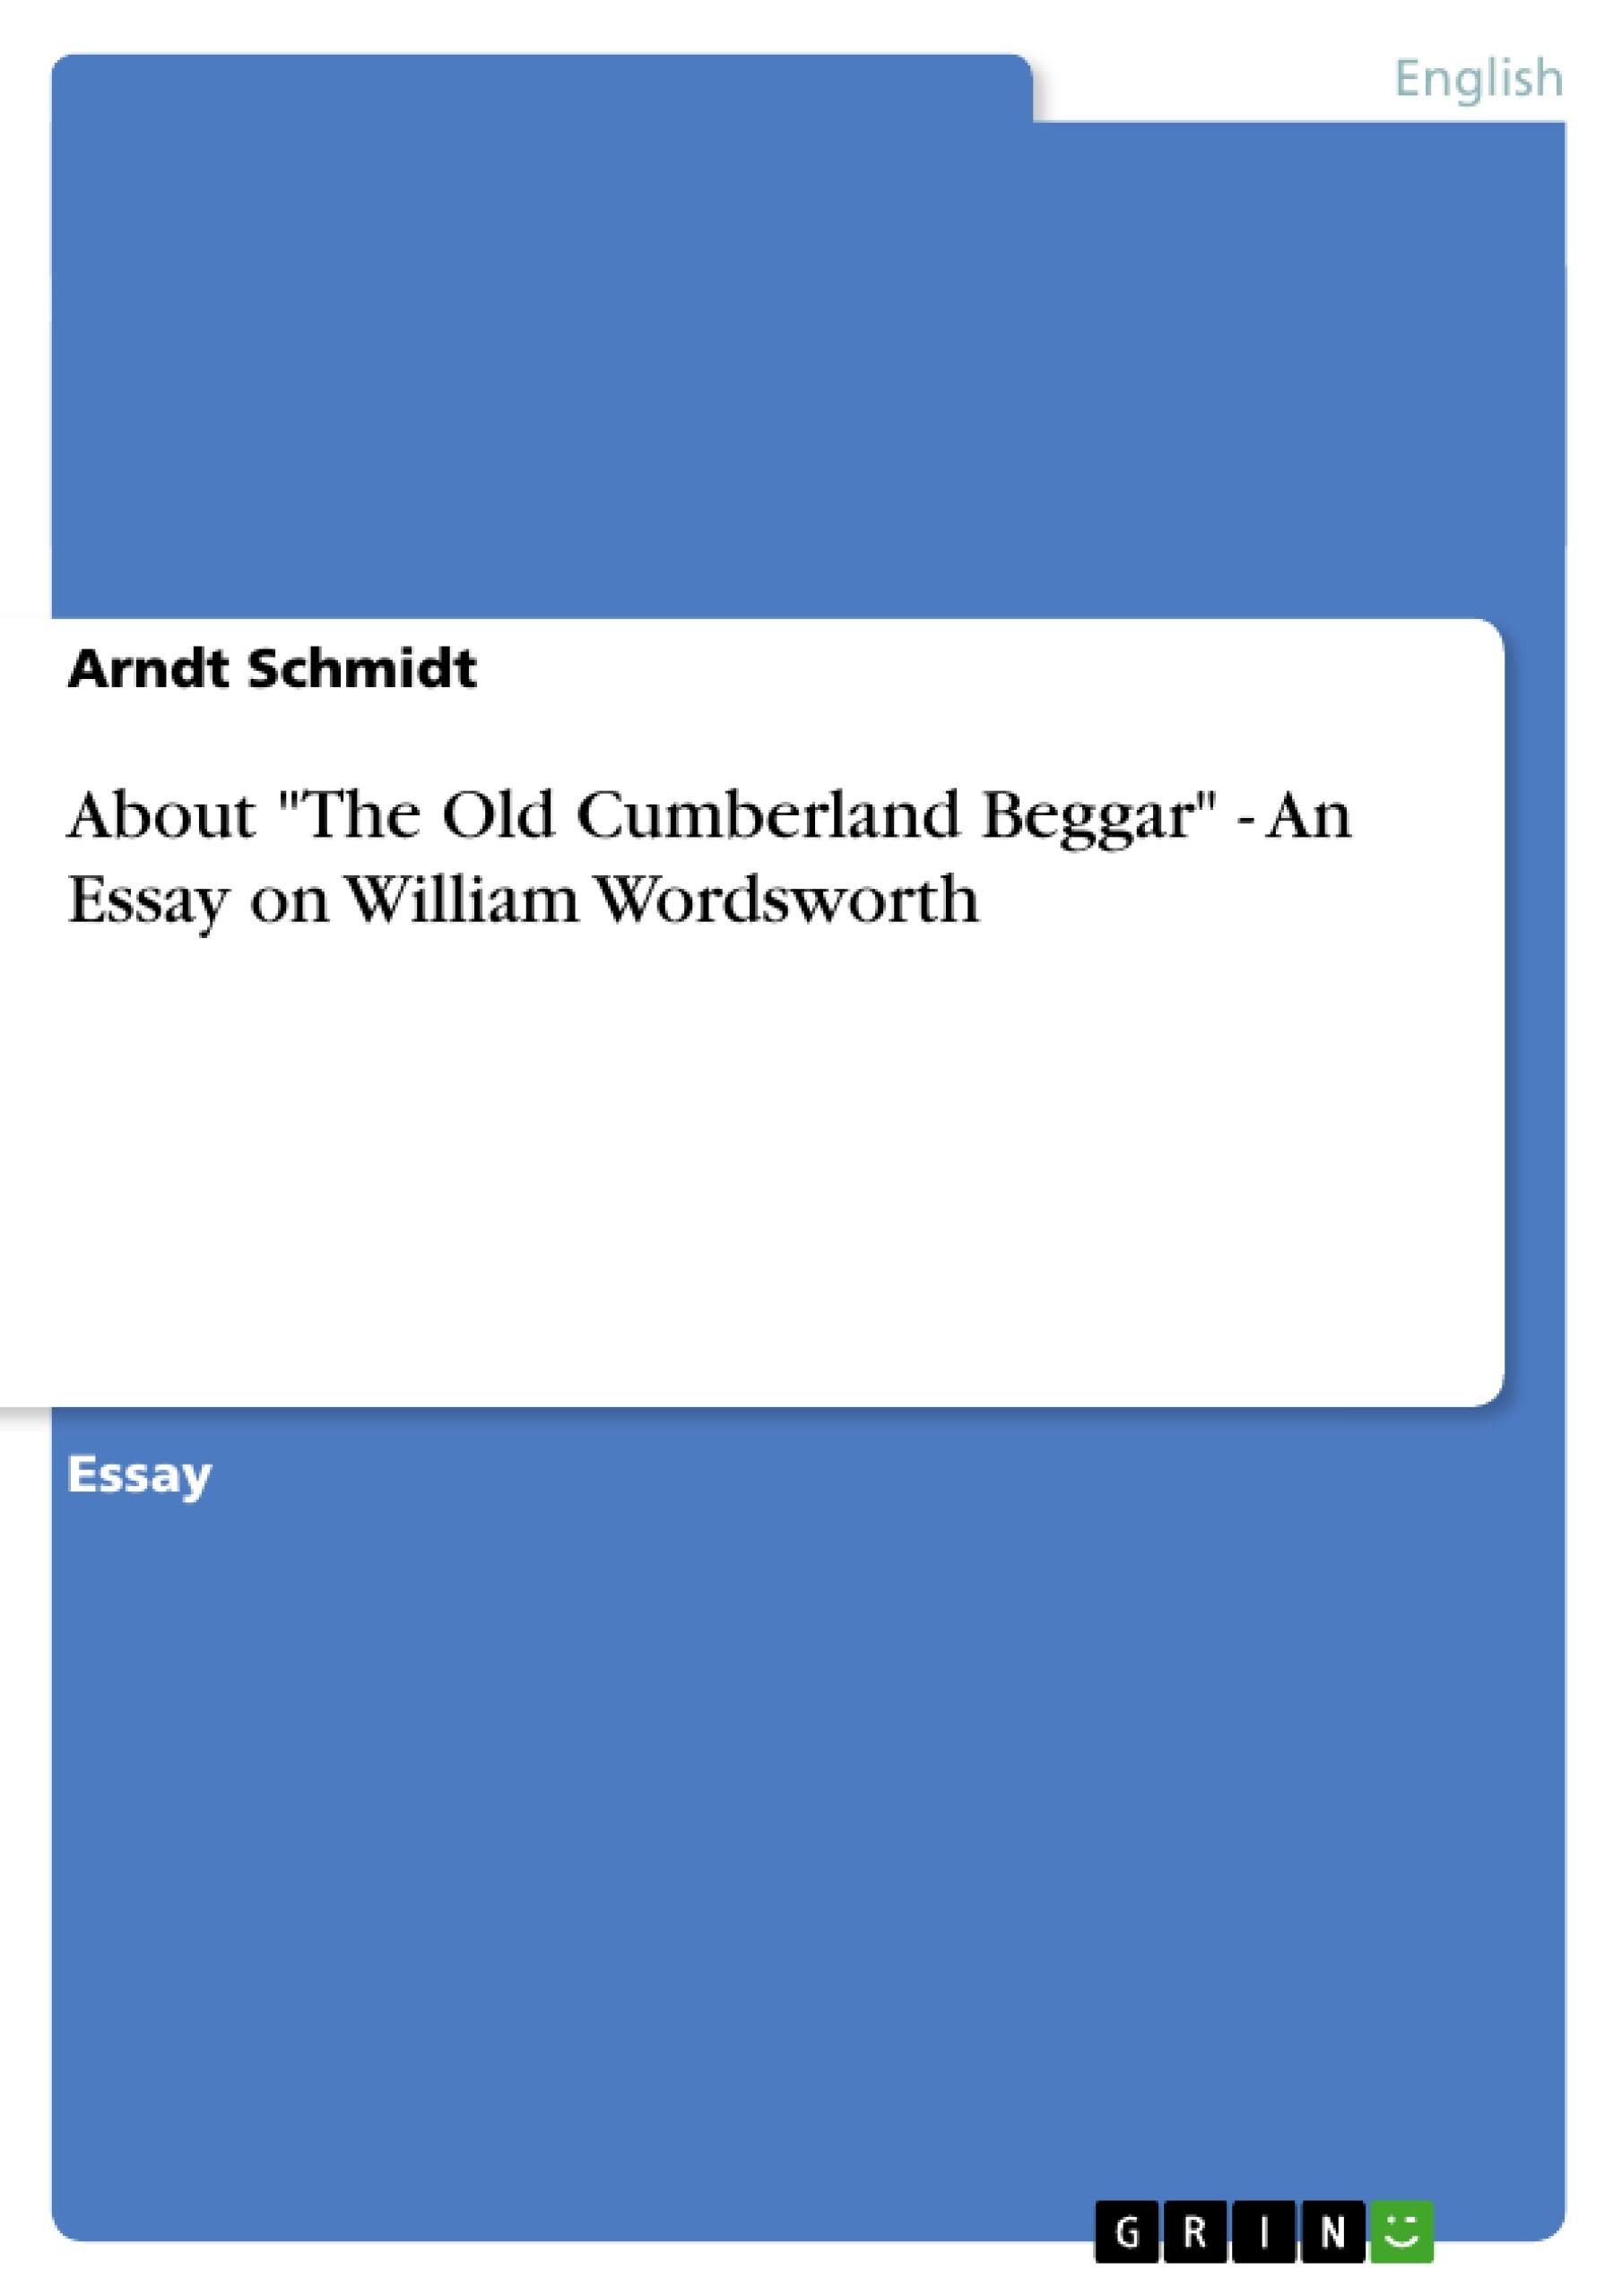 grin   about the old cumberland beggar   an essay on william wordsworth